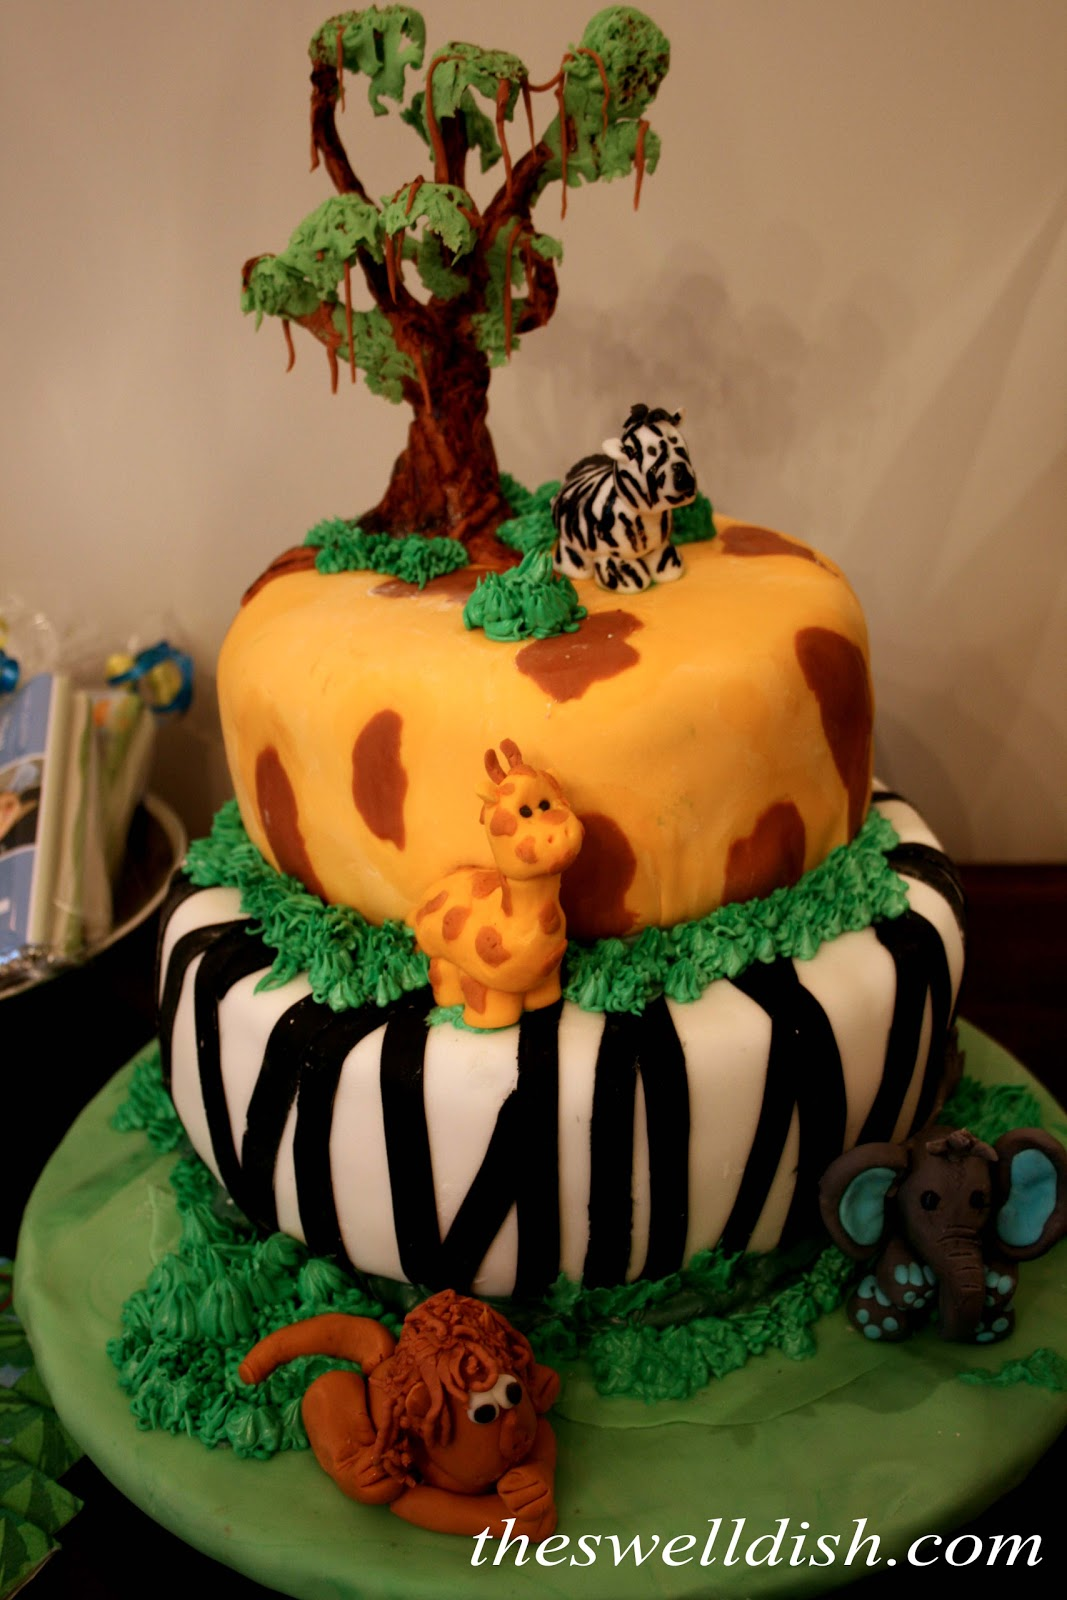 Jungle Birthday Cake Images : The Swell Dish: Jungle Birthday Party Cake